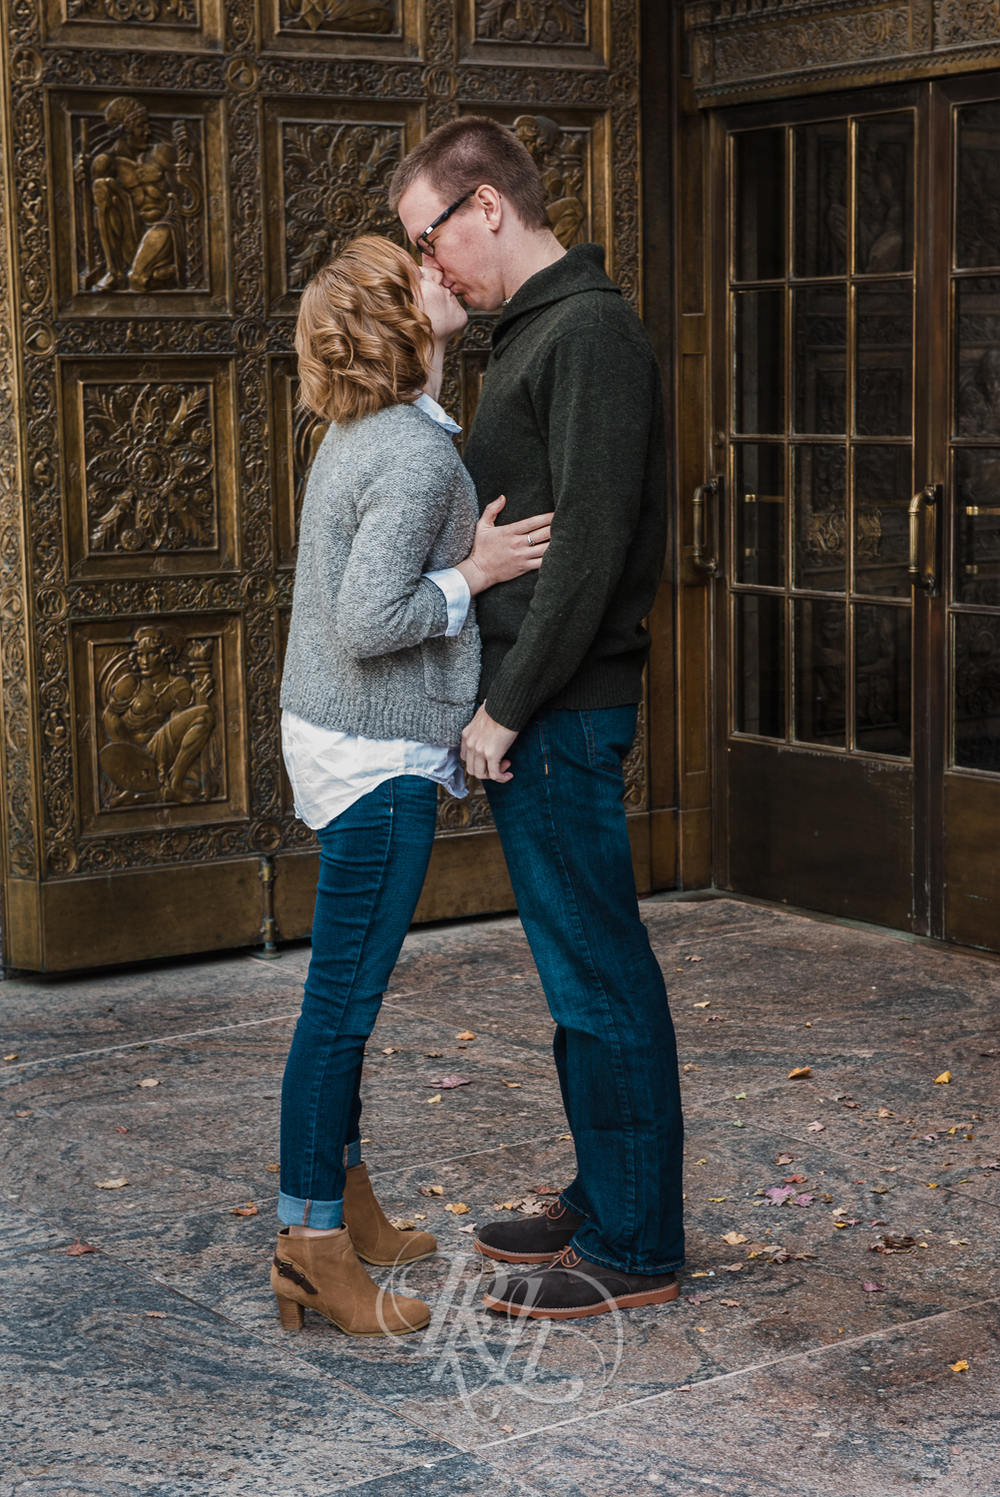 Rochester Engagement Photography - Erin & Jared - RKH Images-4